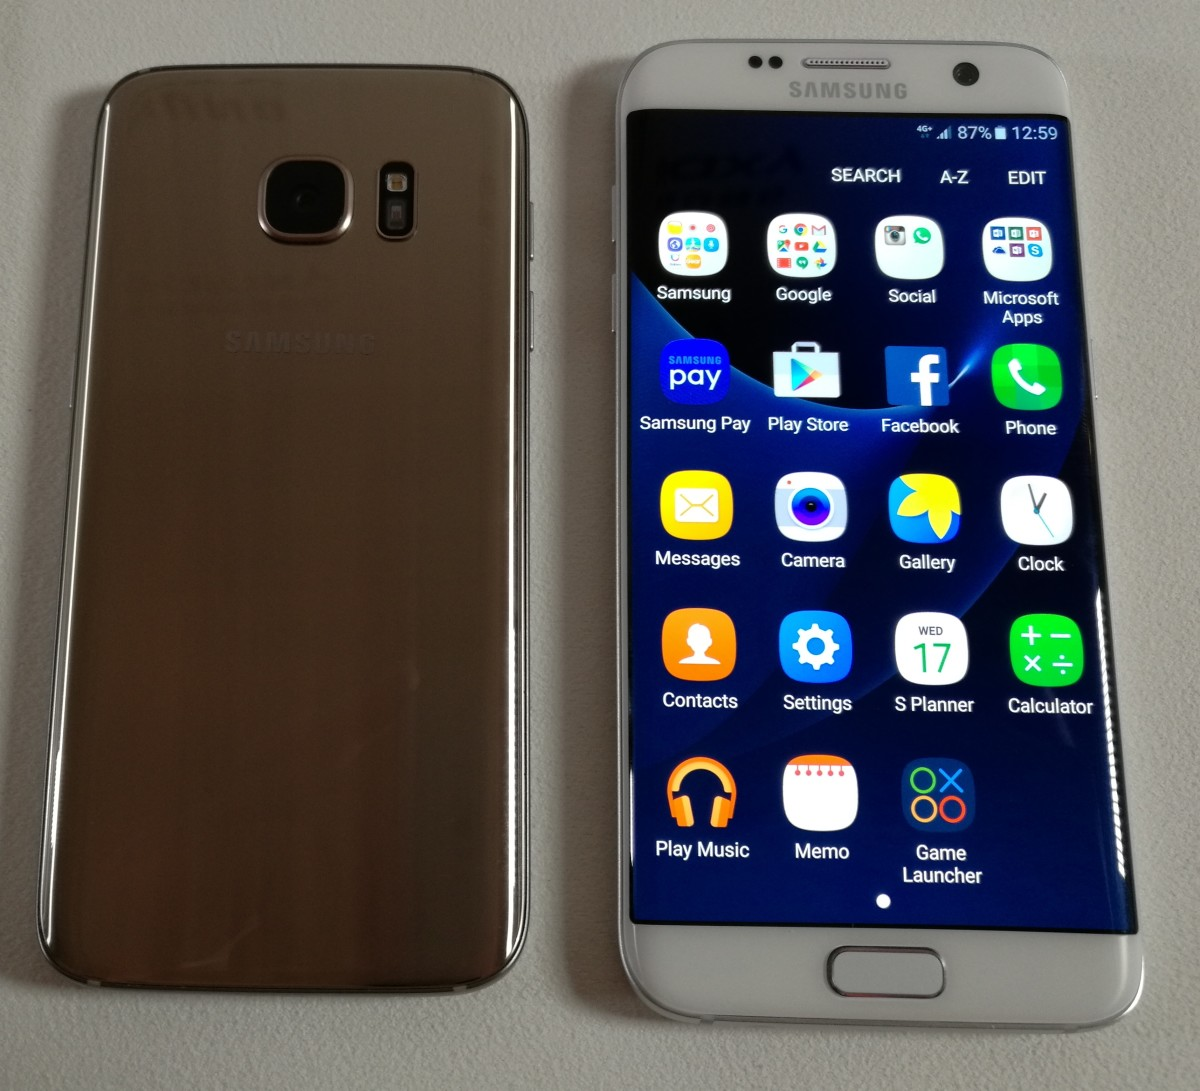 Samsung's new Galaxy S7 and S7 Edge bring features for power